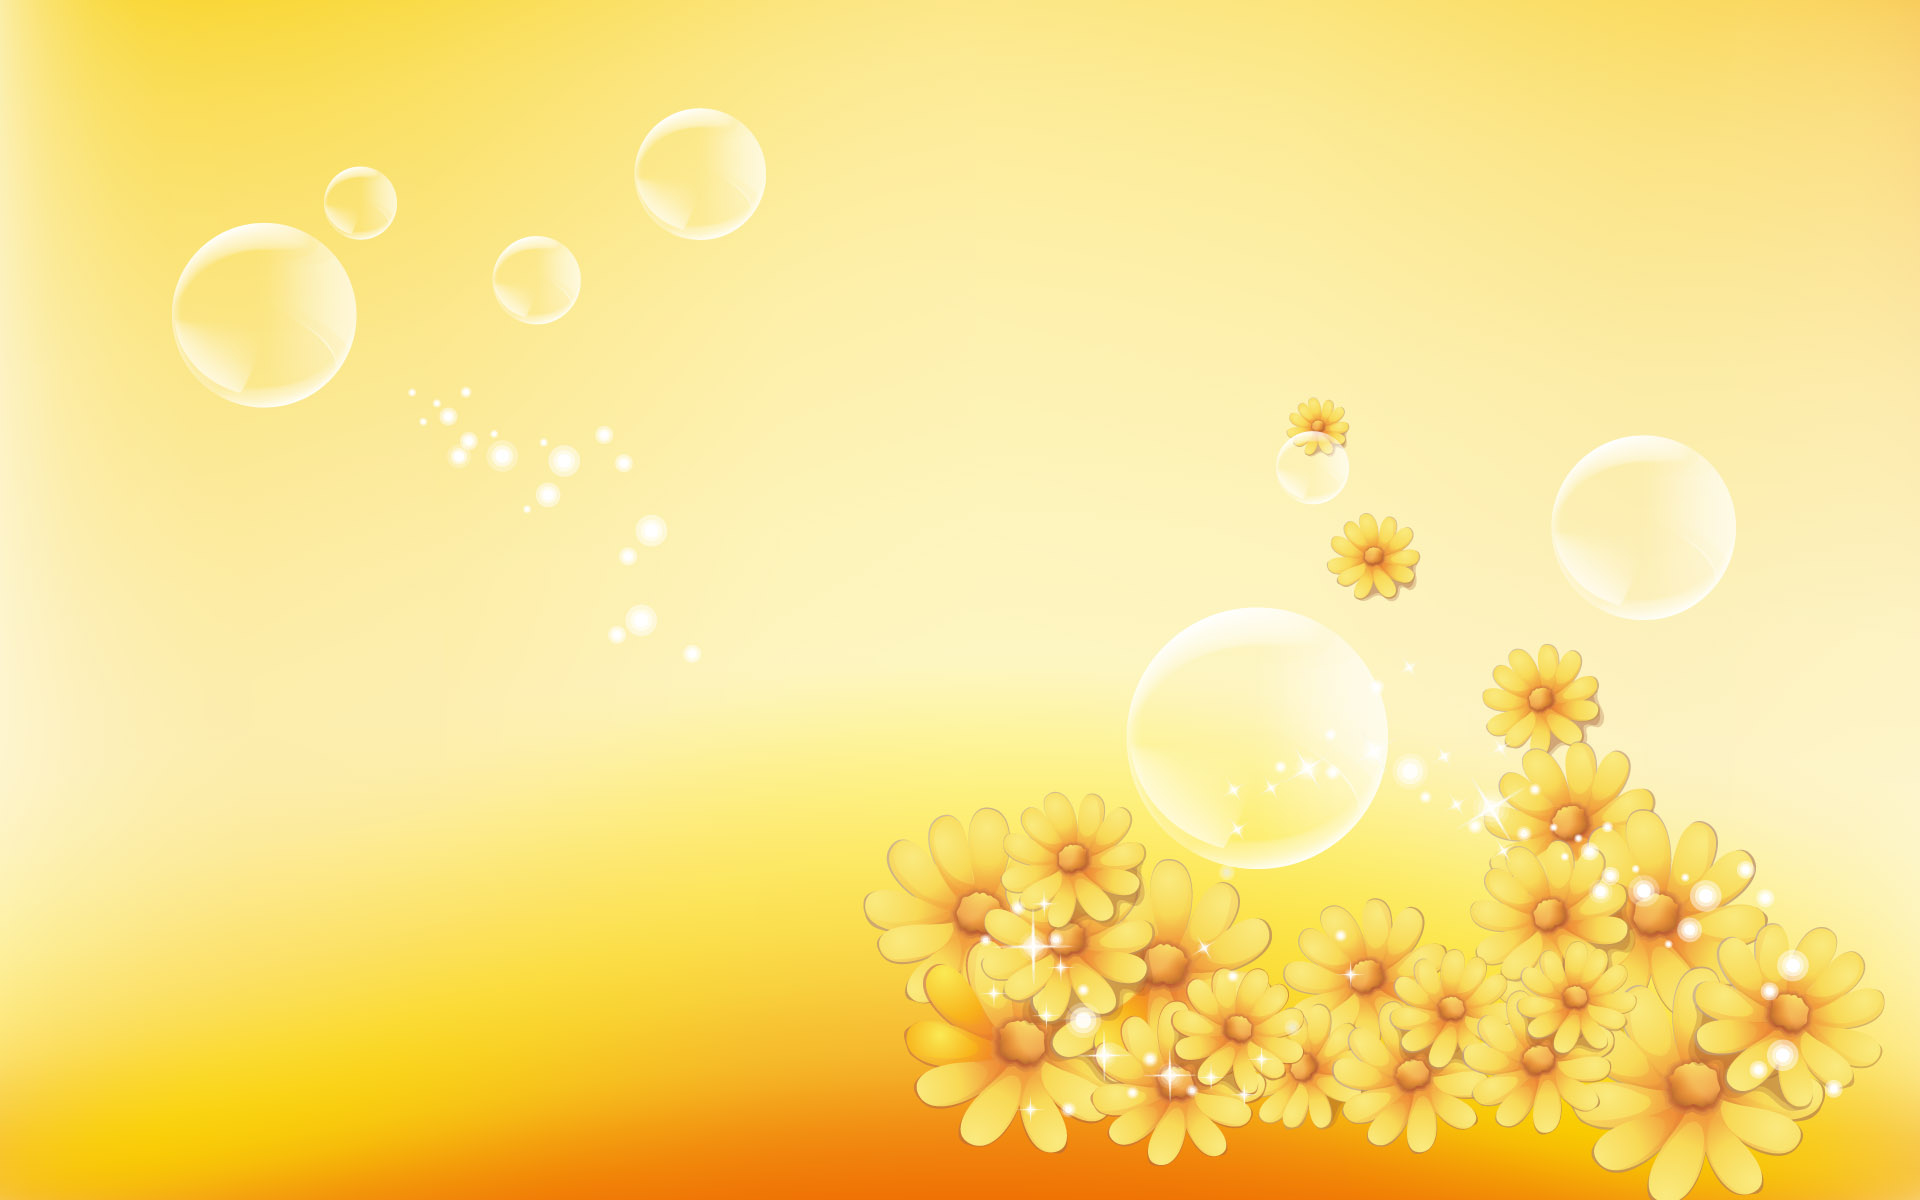 Yellow Floral Background   Wallpaper 34907 1920x1200